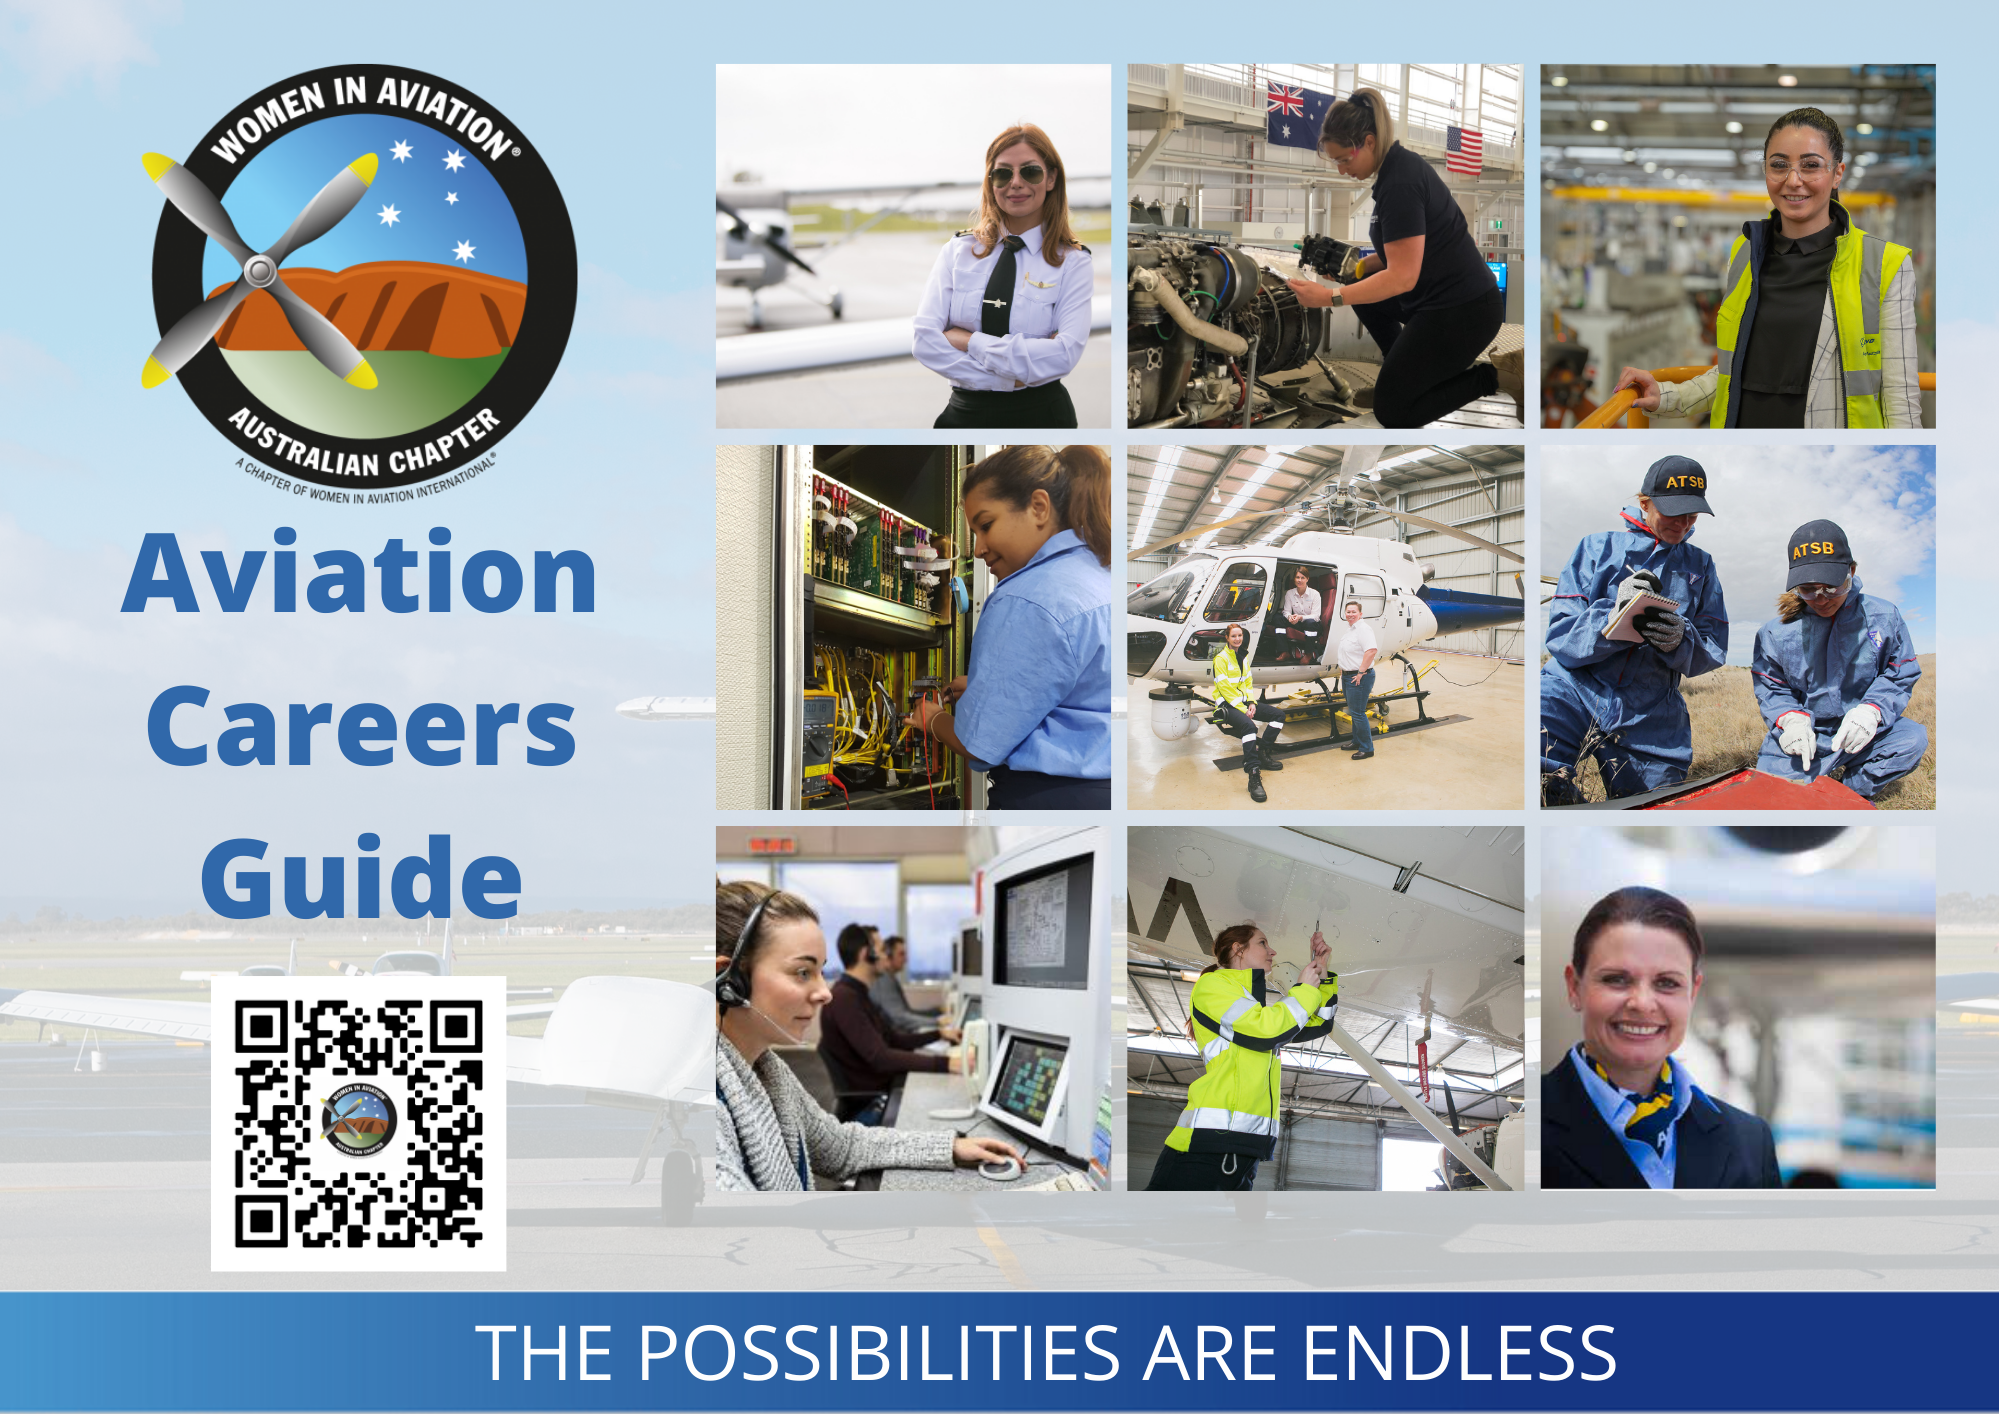 Women in Aviation Australia Chapter Aviation Careers guide